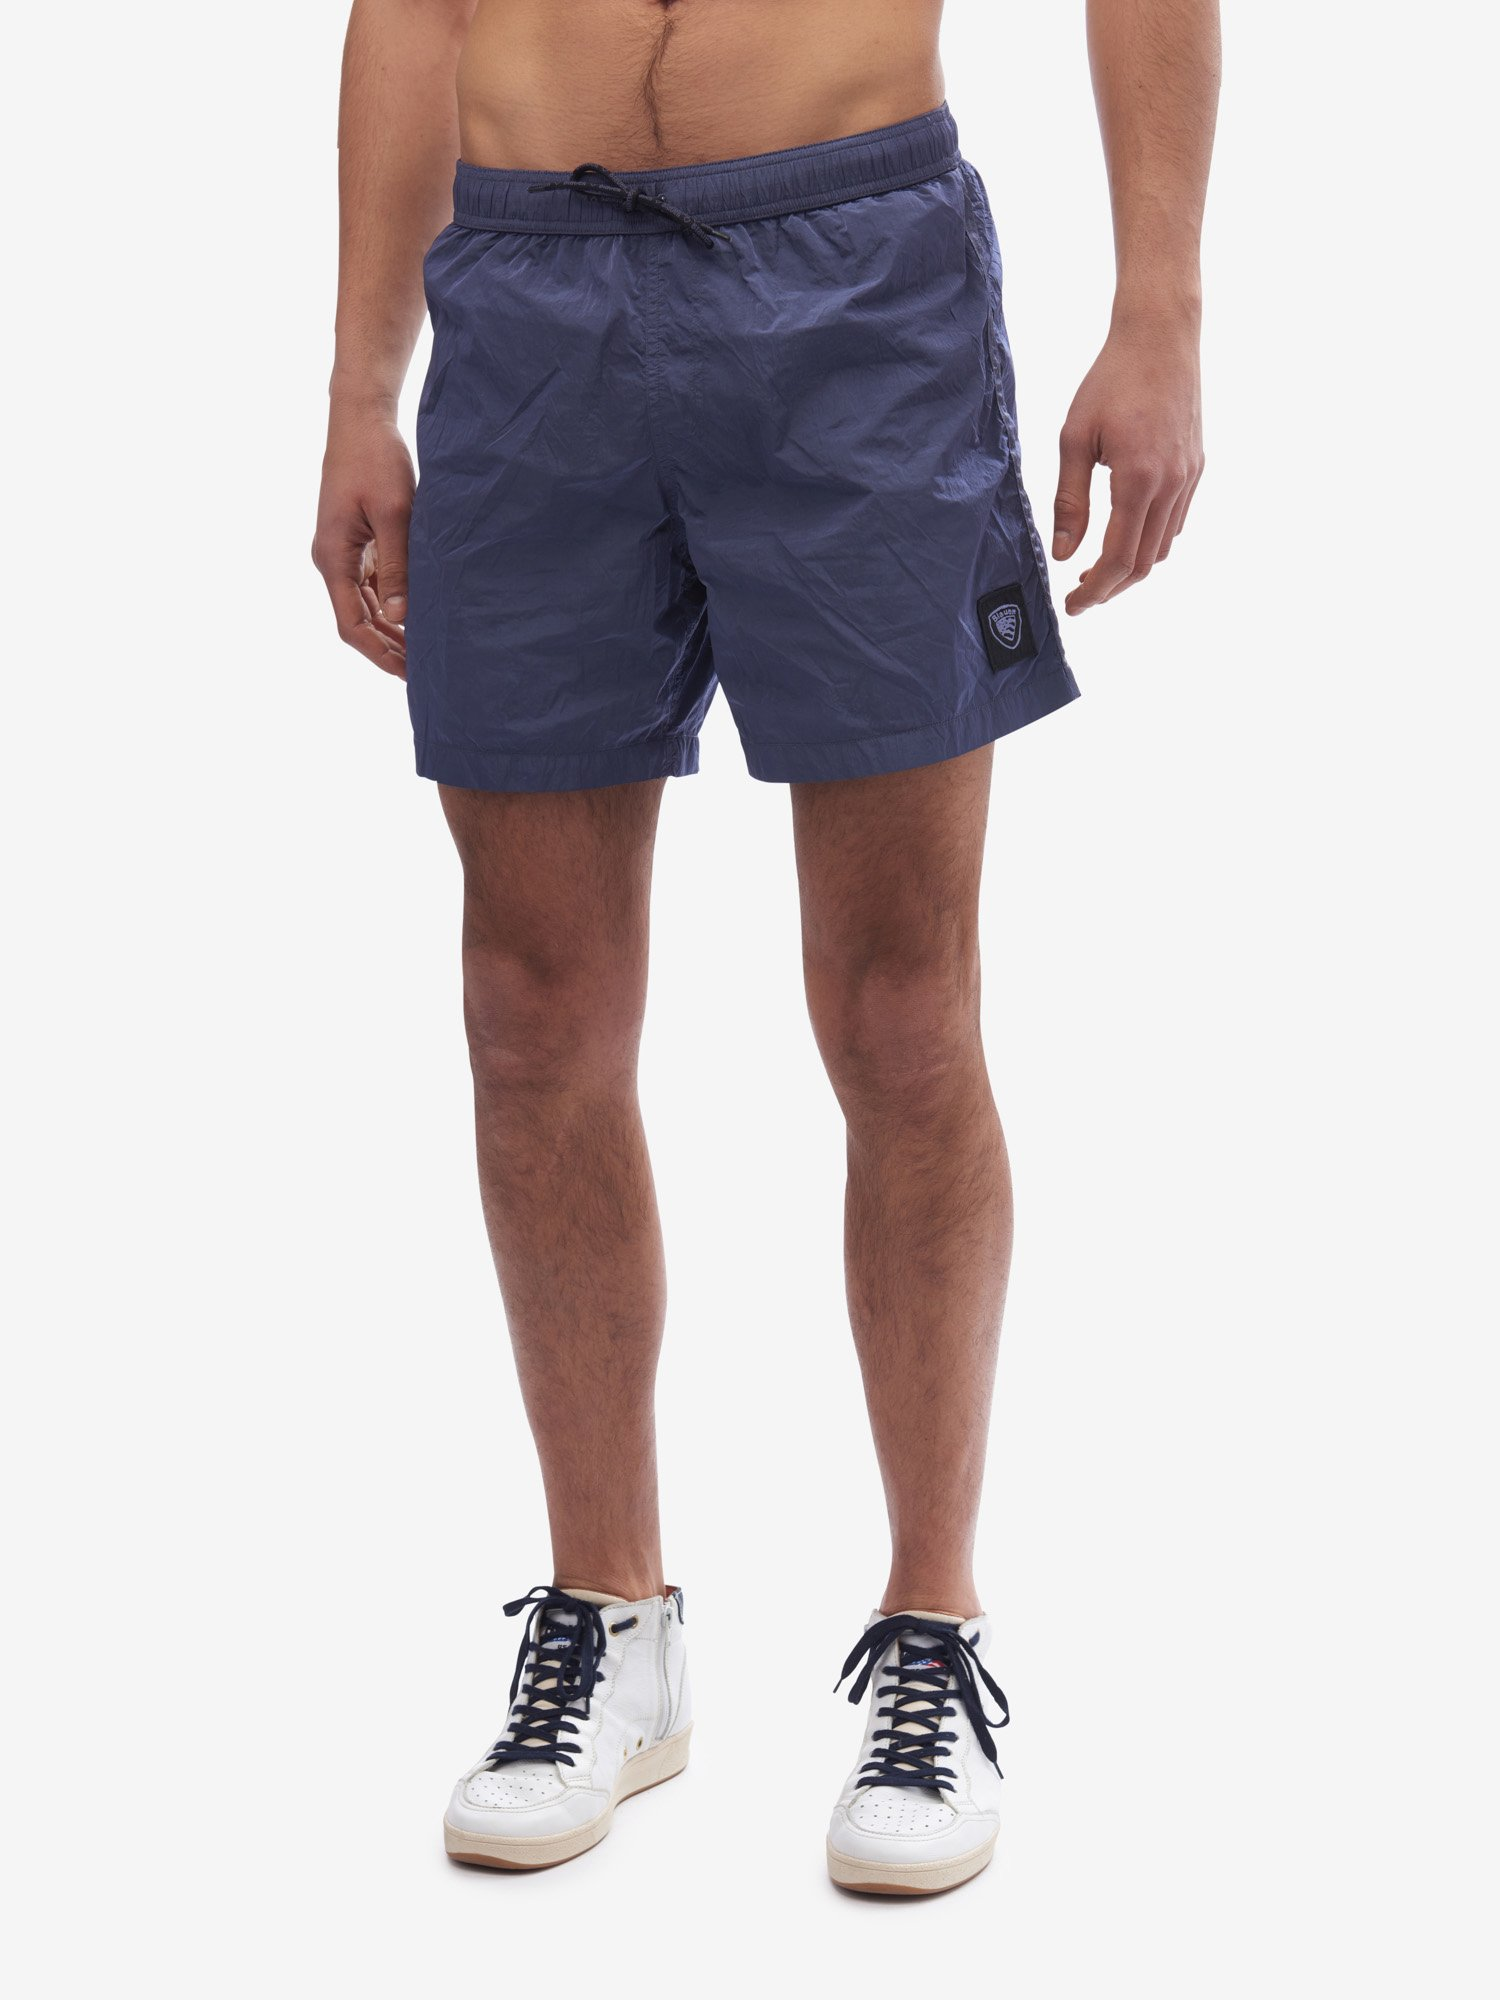 GARMENT-DYED OLD BOXER - Blauer